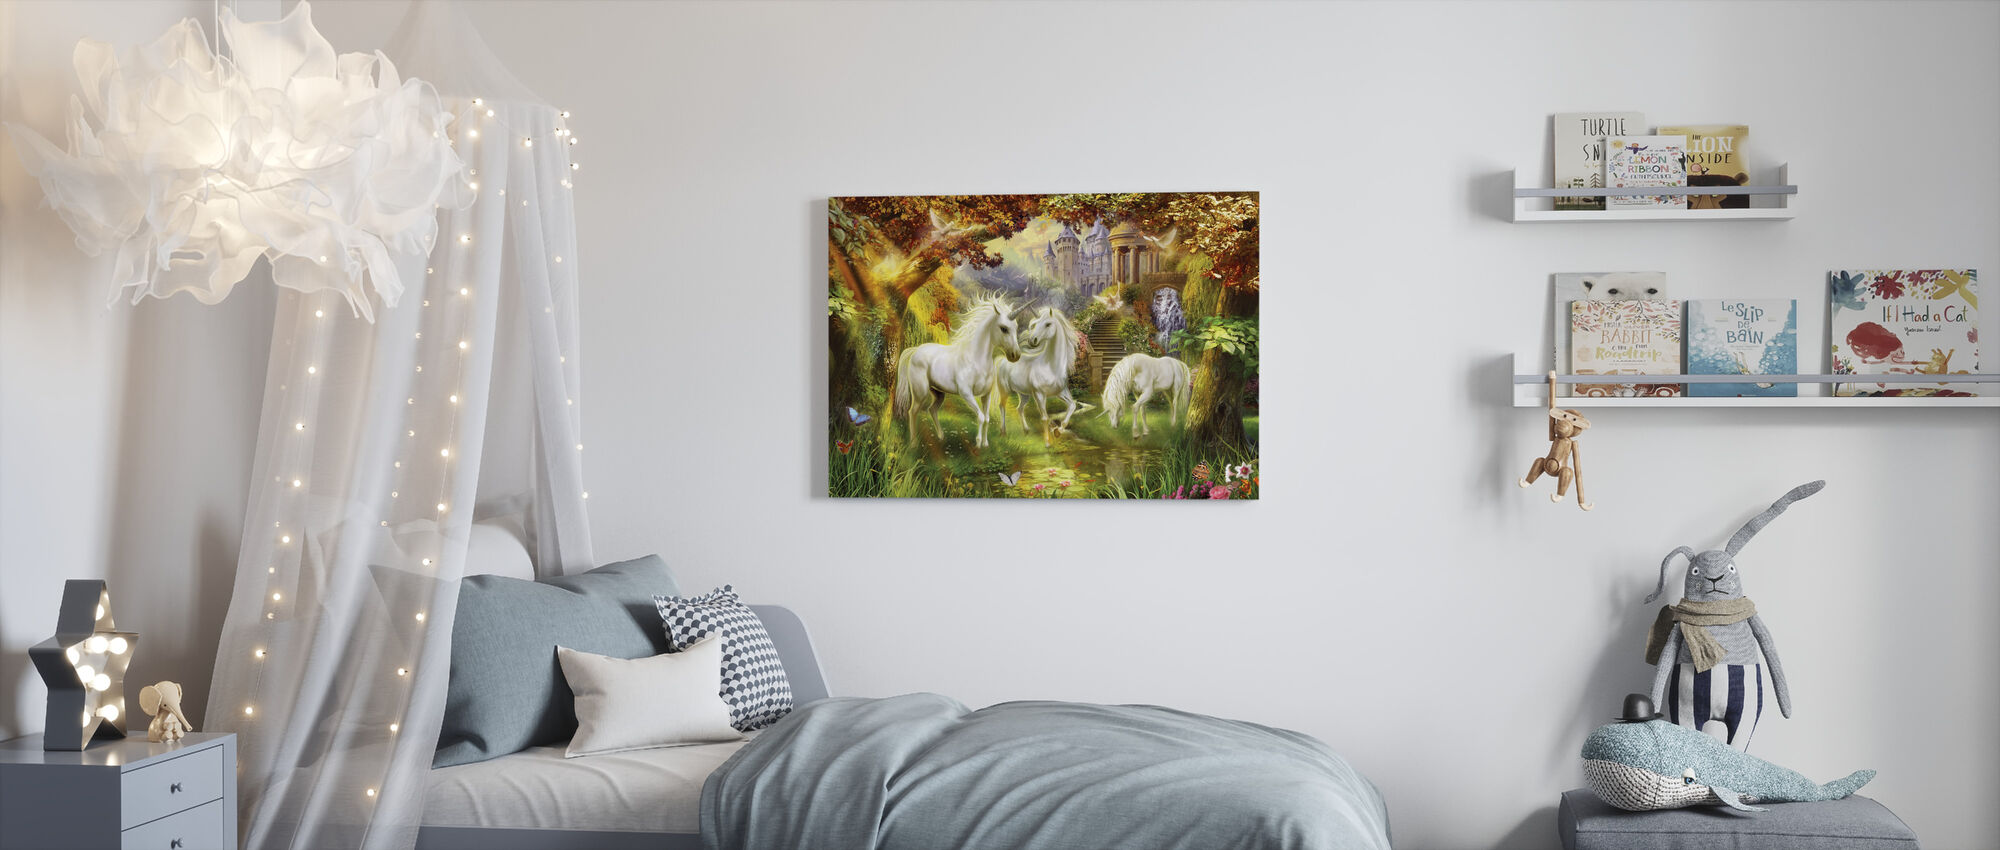 Magical Unicorn Forest Amended - Canvas print - Kids Room